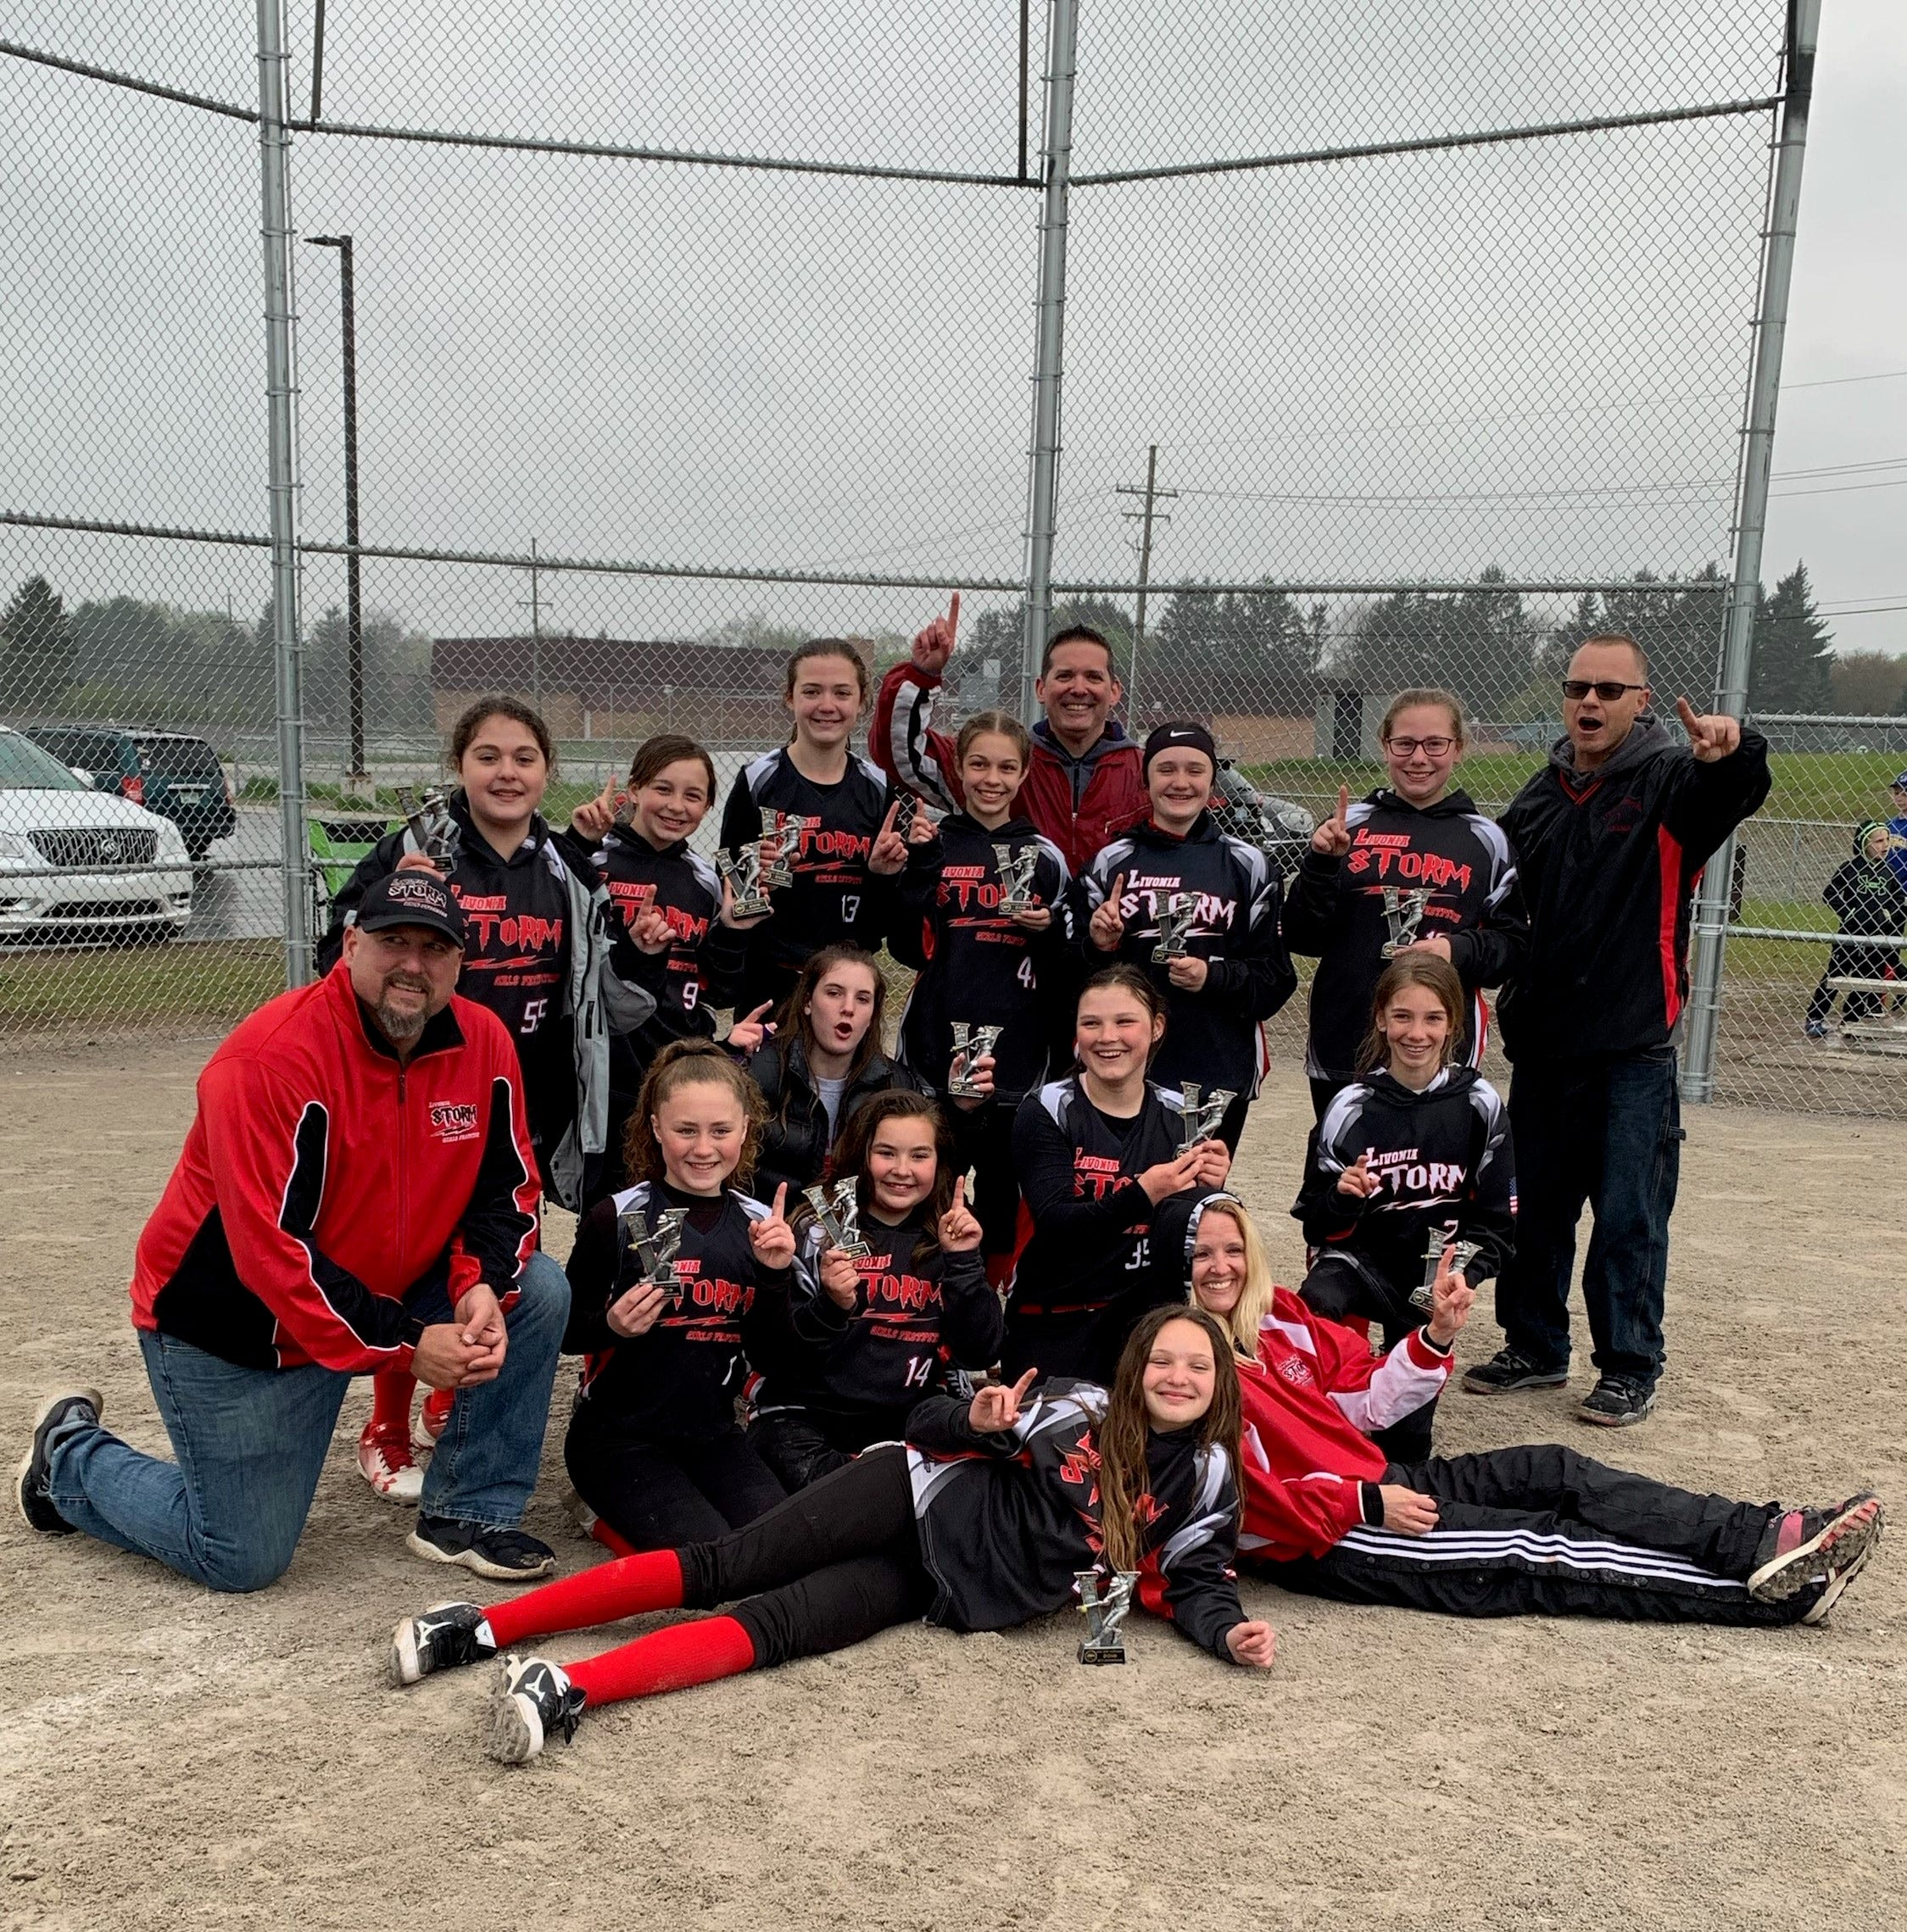 Livonia Storm softball team wins Northville Early Bird Tournament